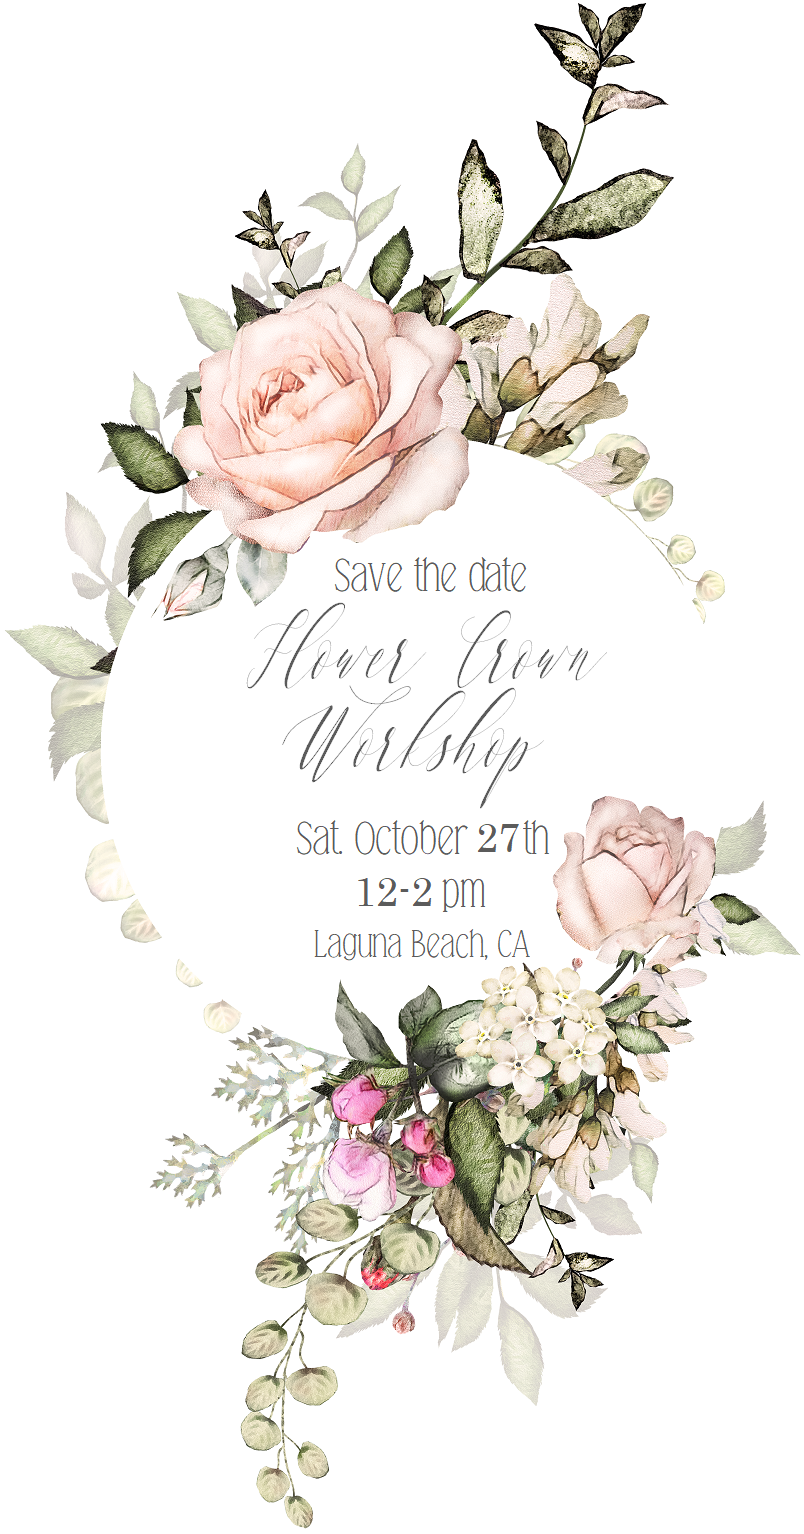 Flower Crown Workshop in Laguna Beach Southern California by Love Sparkle Pretty. Floral design workshop.